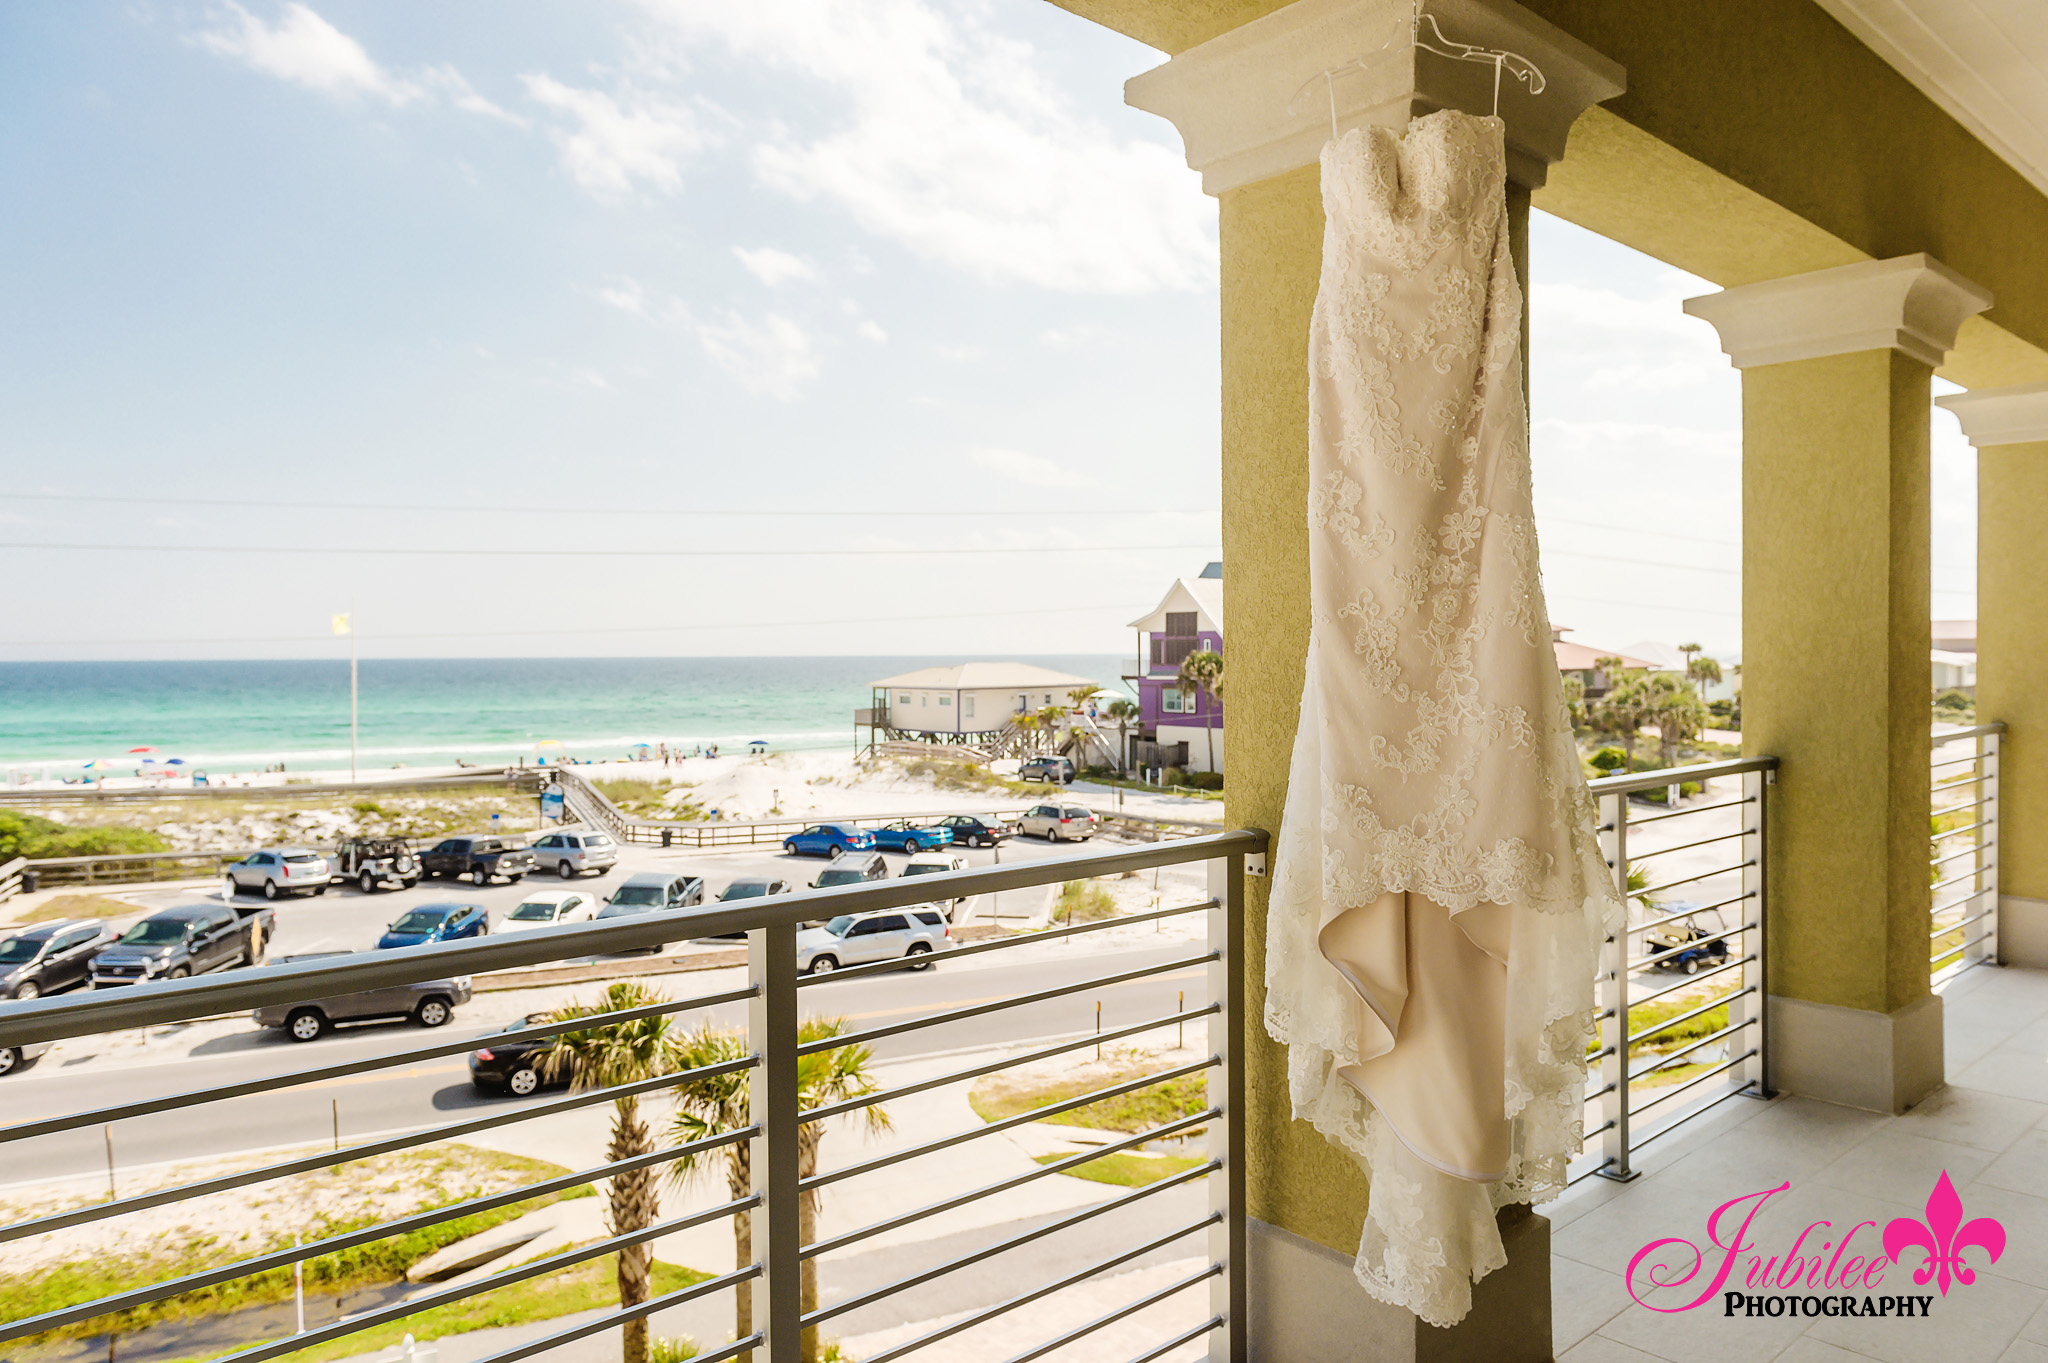 30A_Wedding_Photographer_7141